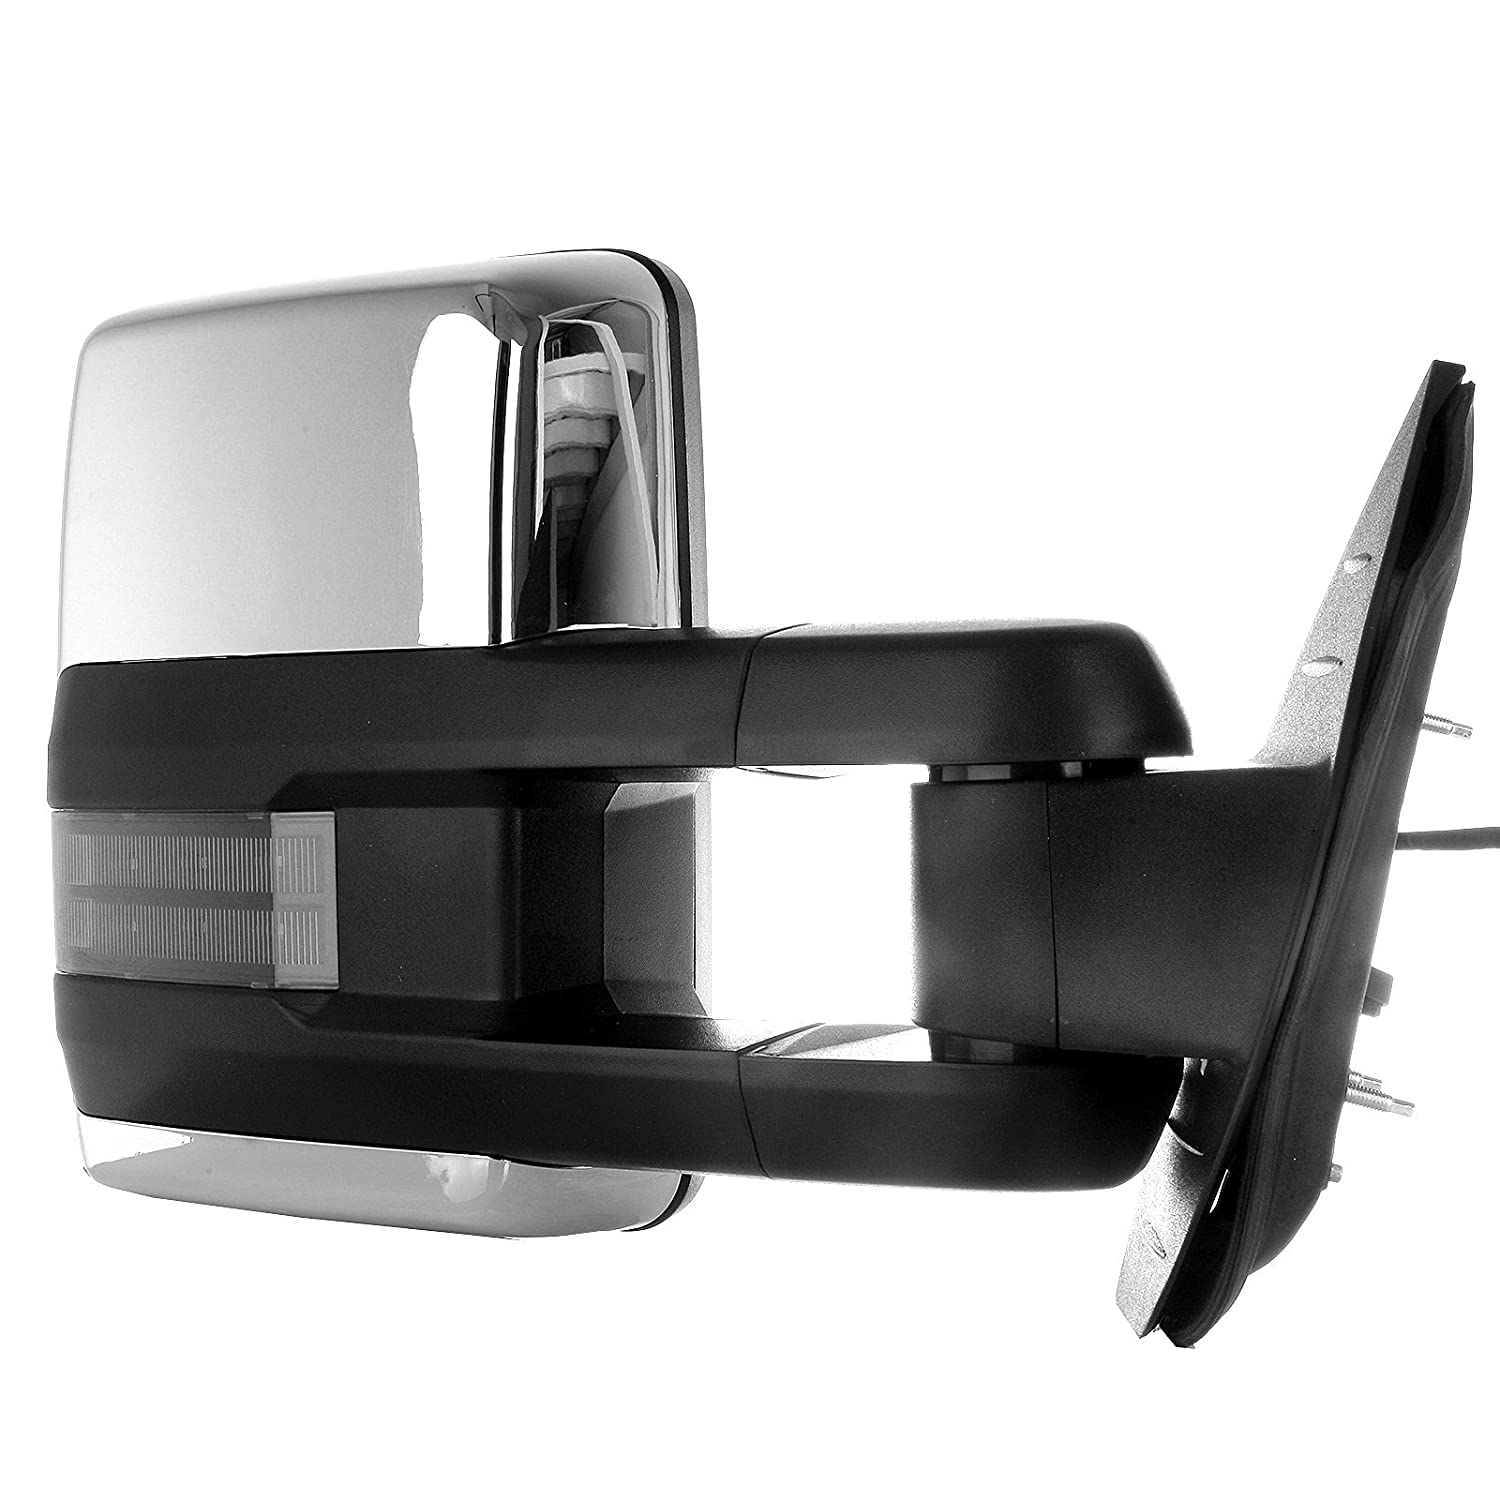 SCITOO Towing Mirrors fit Chevy Silverado GMC Sierra 1500 2500 3500 Sierra 2007-2013 Chevy Avalanche 1500 Suburban 1500 2500 Chrome Cover Power Heated Signal Light Pair Mirrors